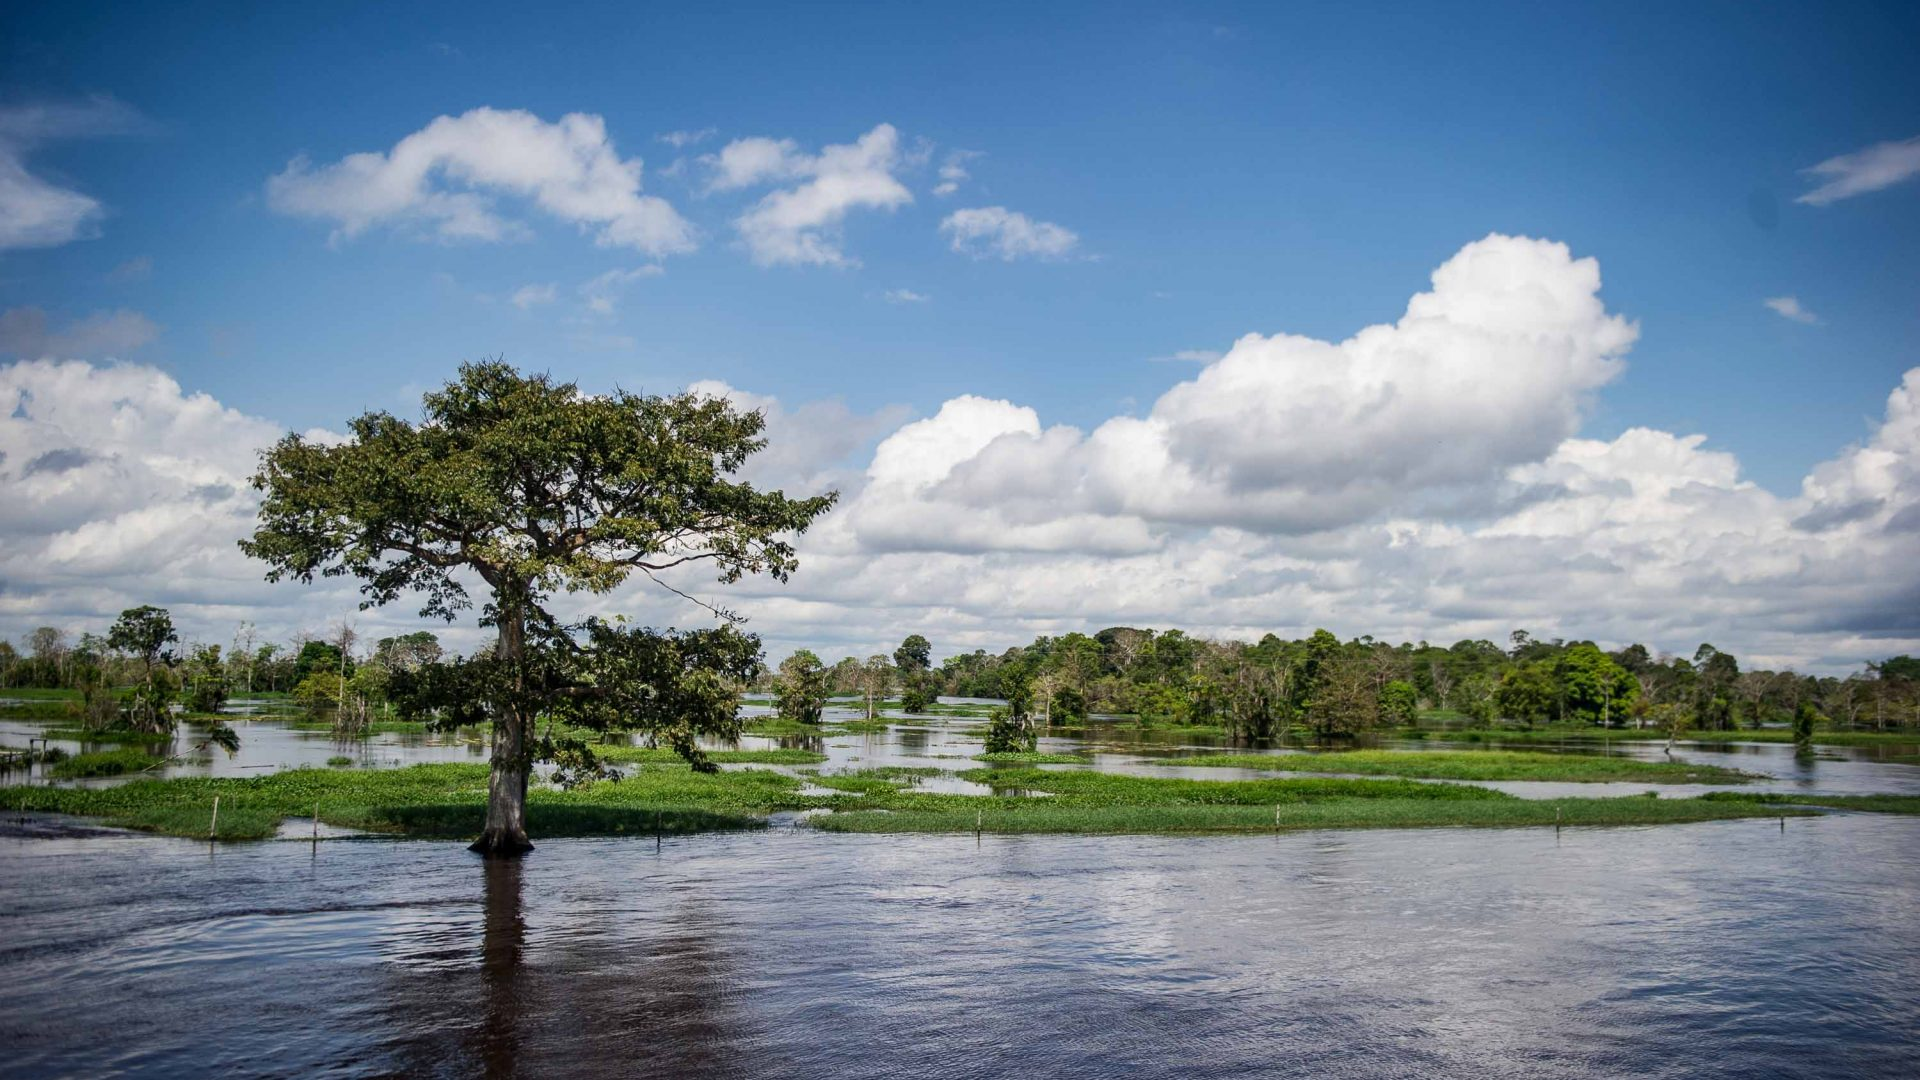 The Cisne Branco riverboat passes a flooded forest in the Amazon.